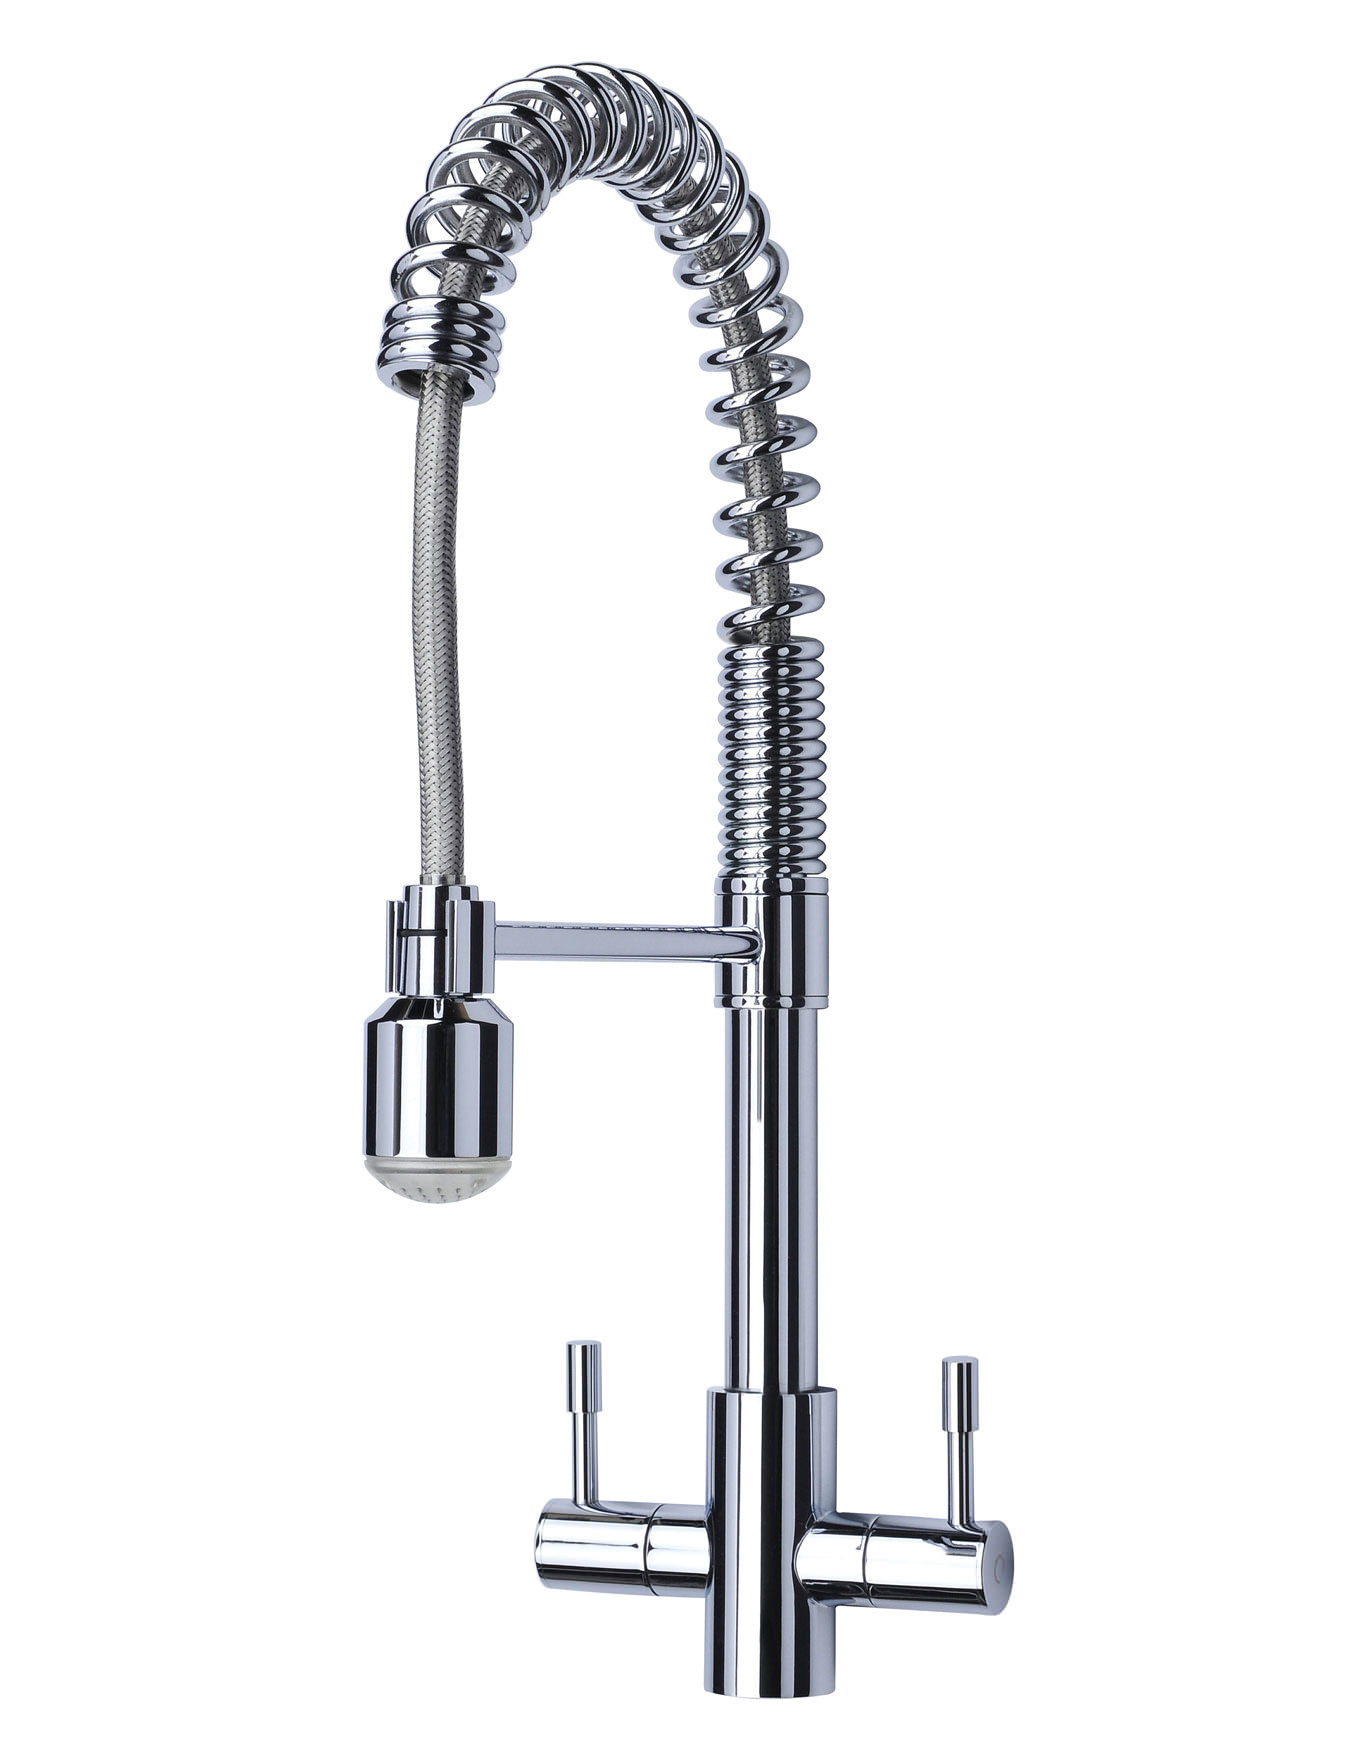 Mayfair Groove Kitchen Sink Mixer Tap Chrome Kit173